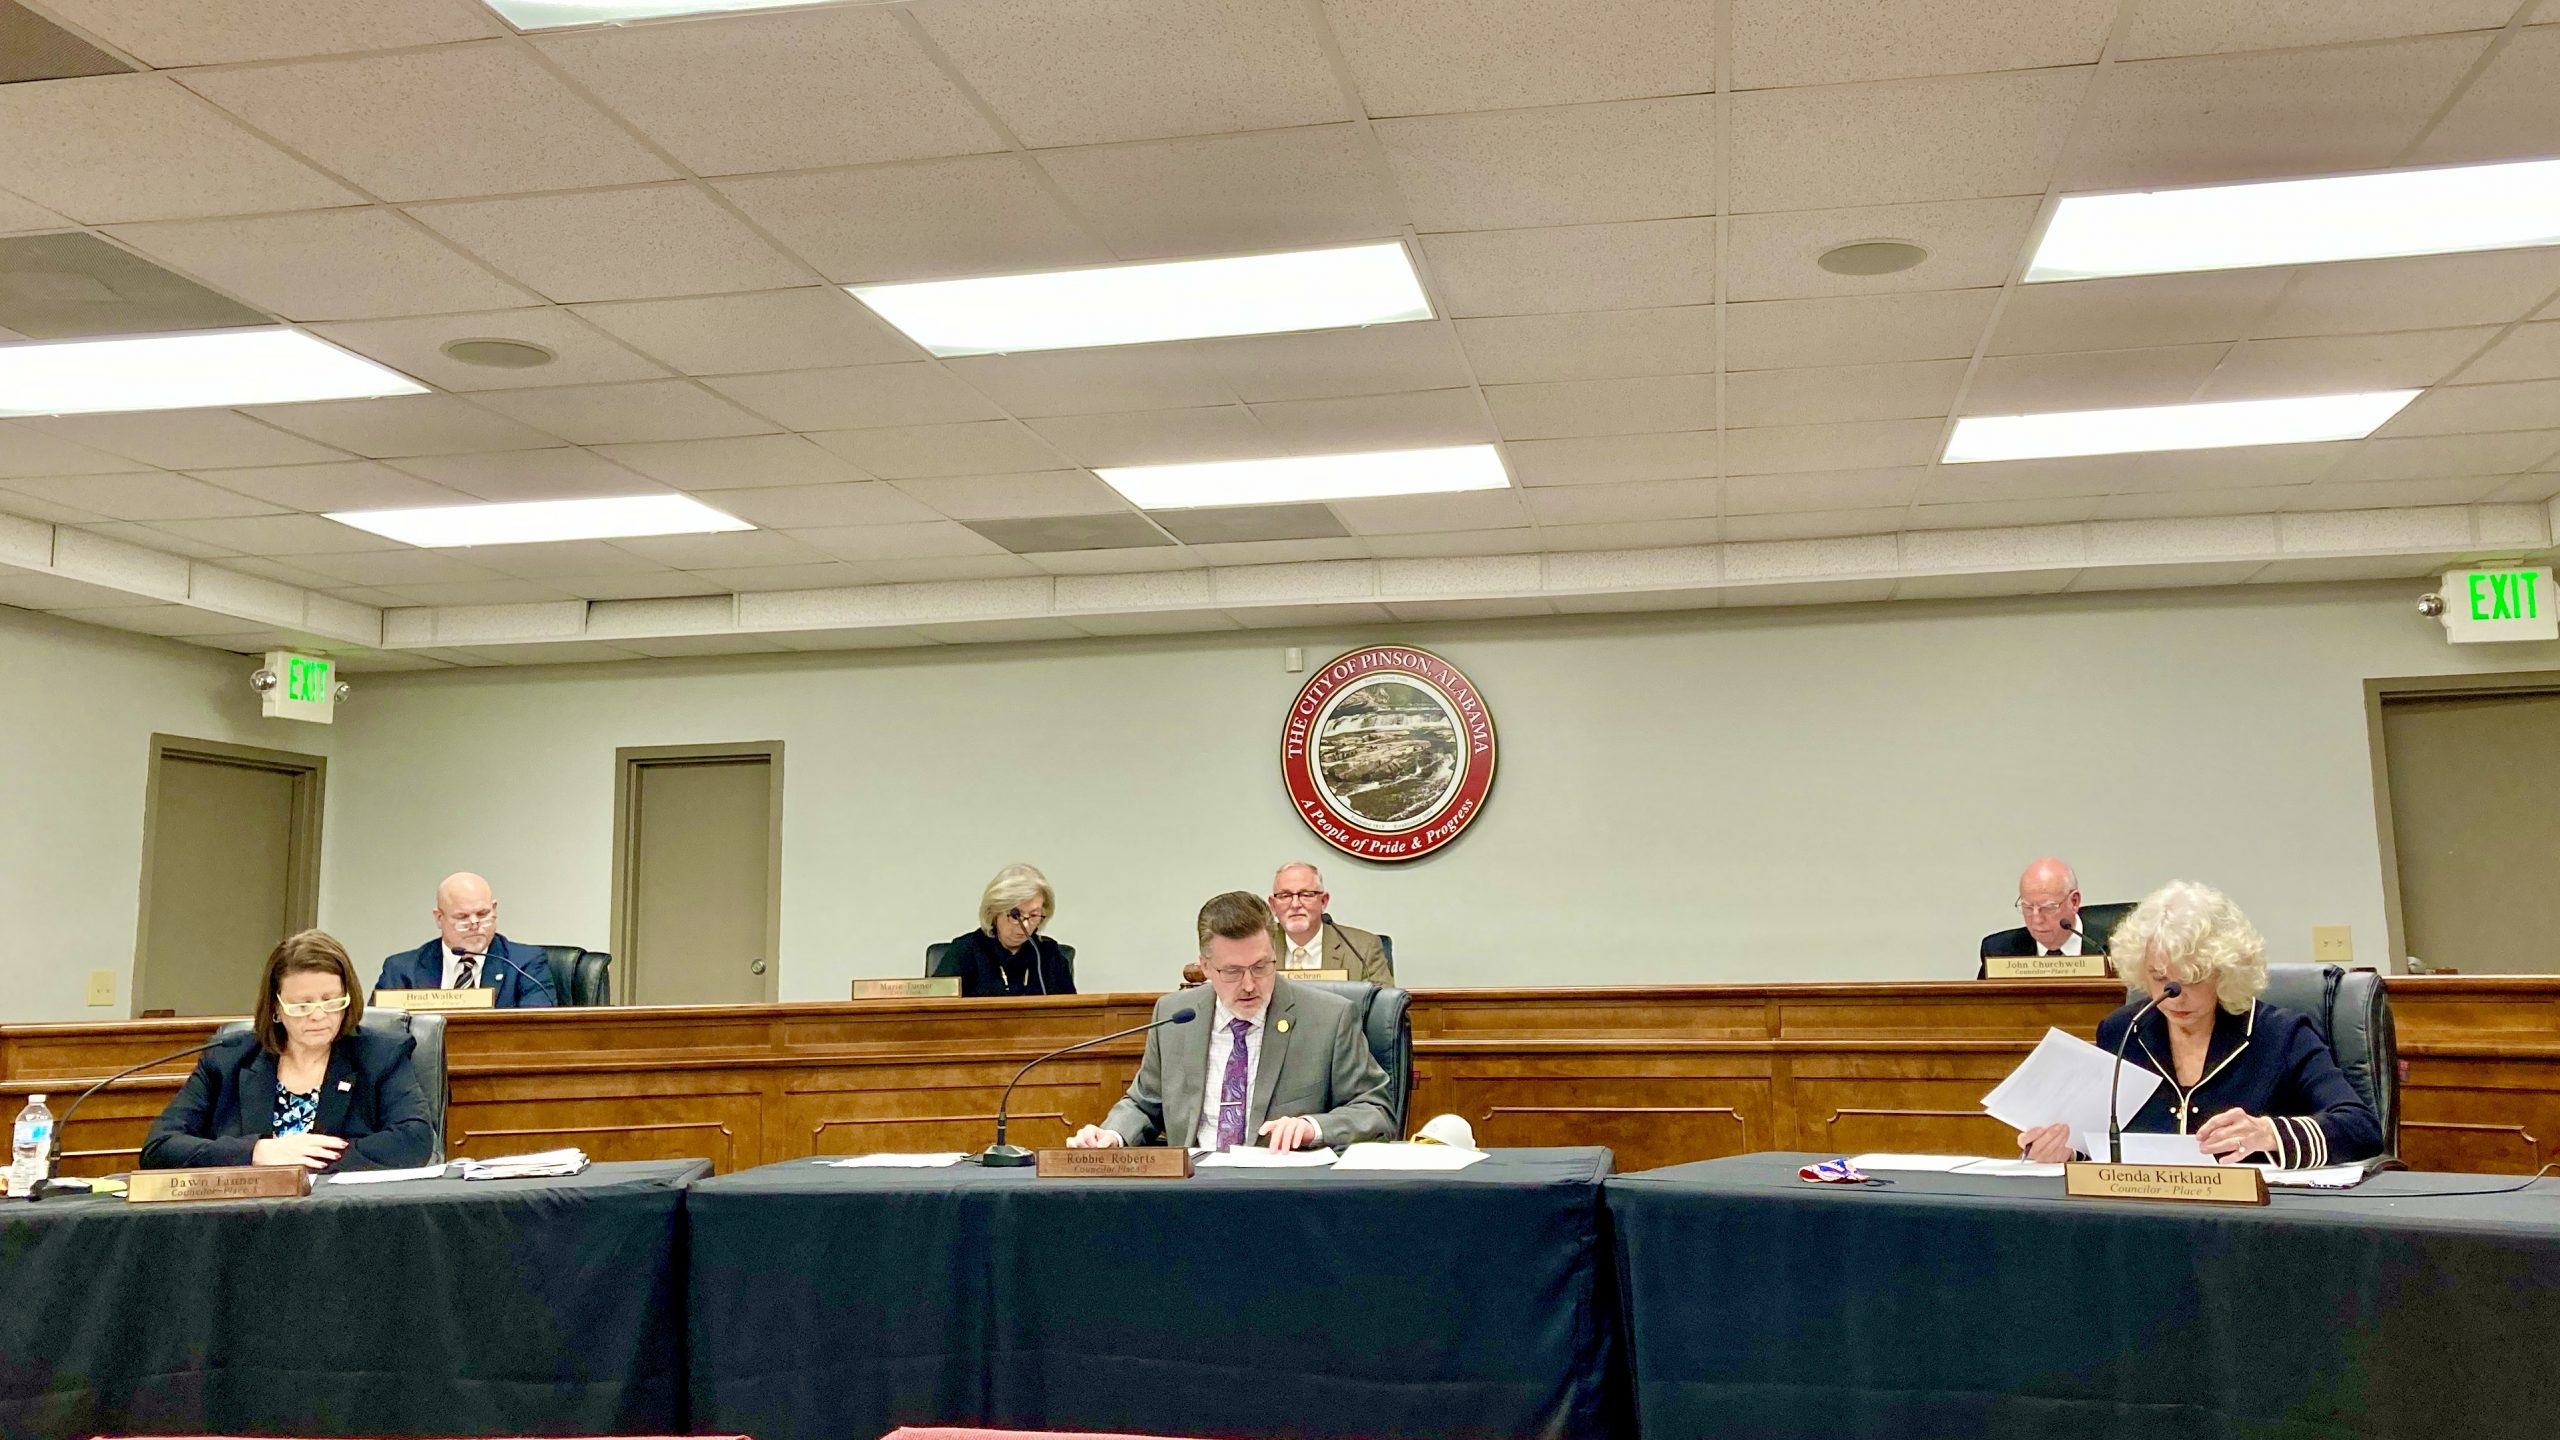 Pinson Council discusses new trash removal services, Second Amendment Resolution